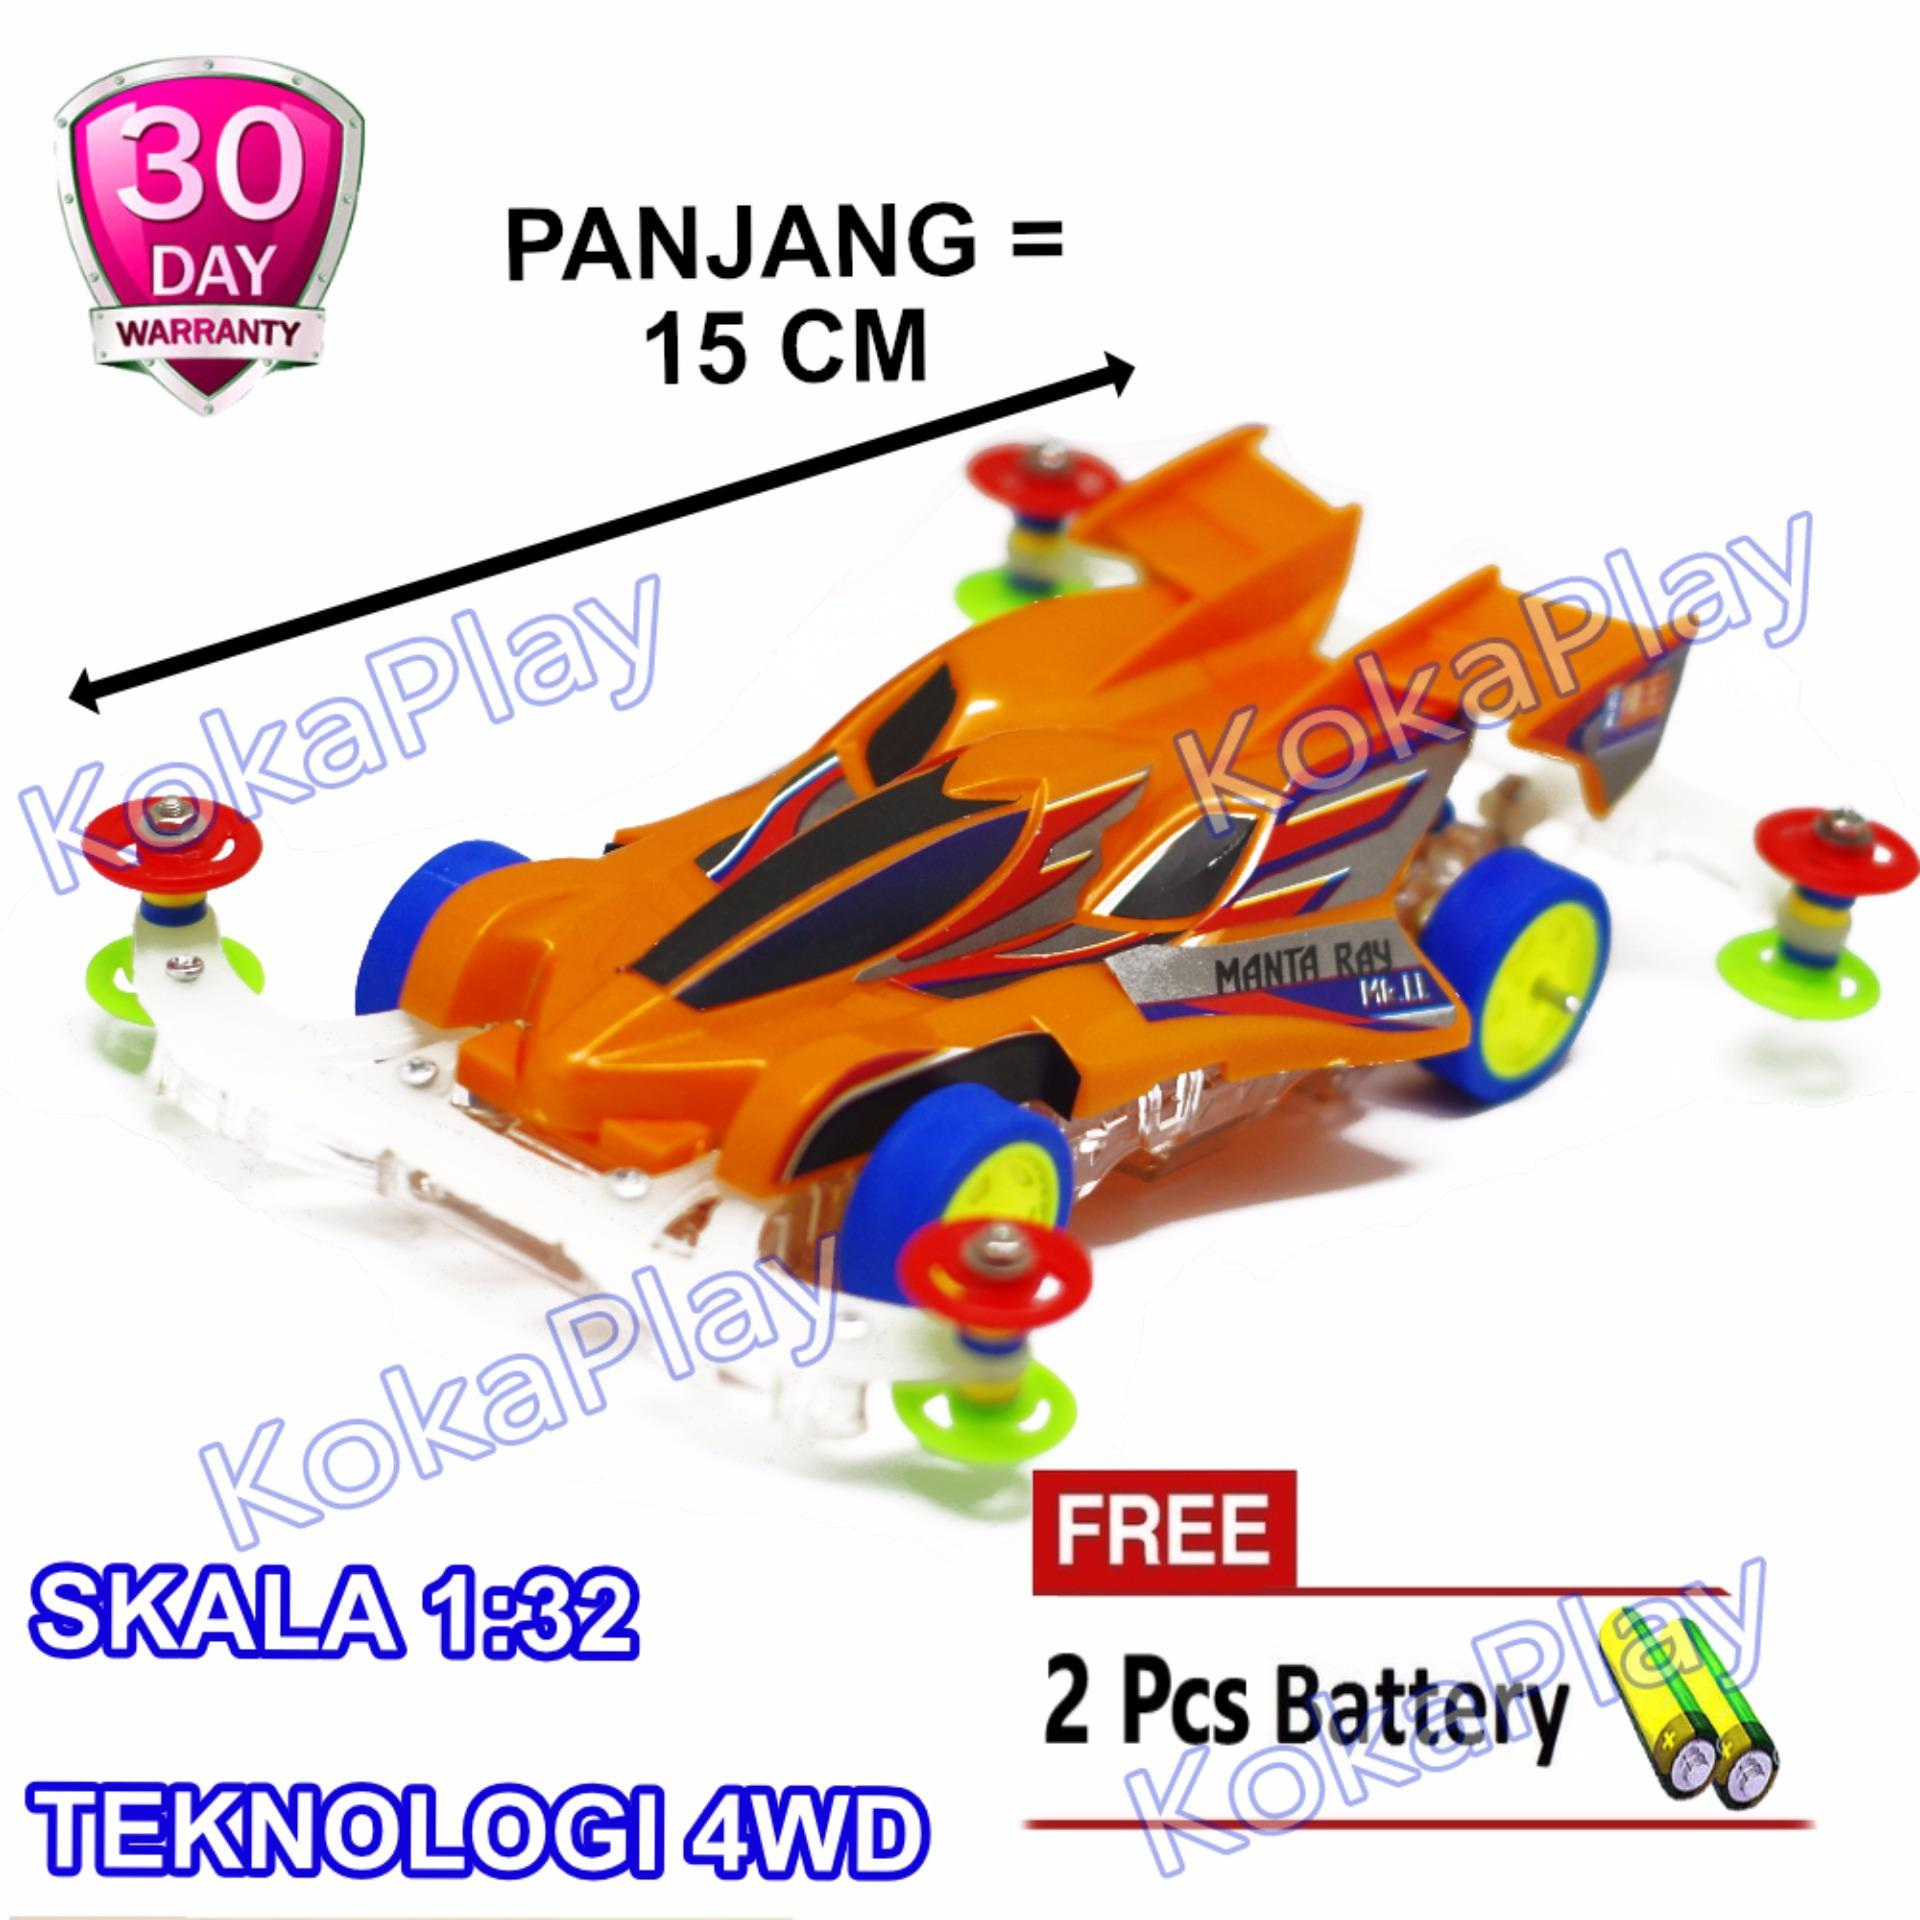 Premiumtamiya Dinamo Ultra Dash Racing Mini 4wd Daftar Tamiya 15455 Light Motor Terkini Situs Source Kokaplay Fast Car